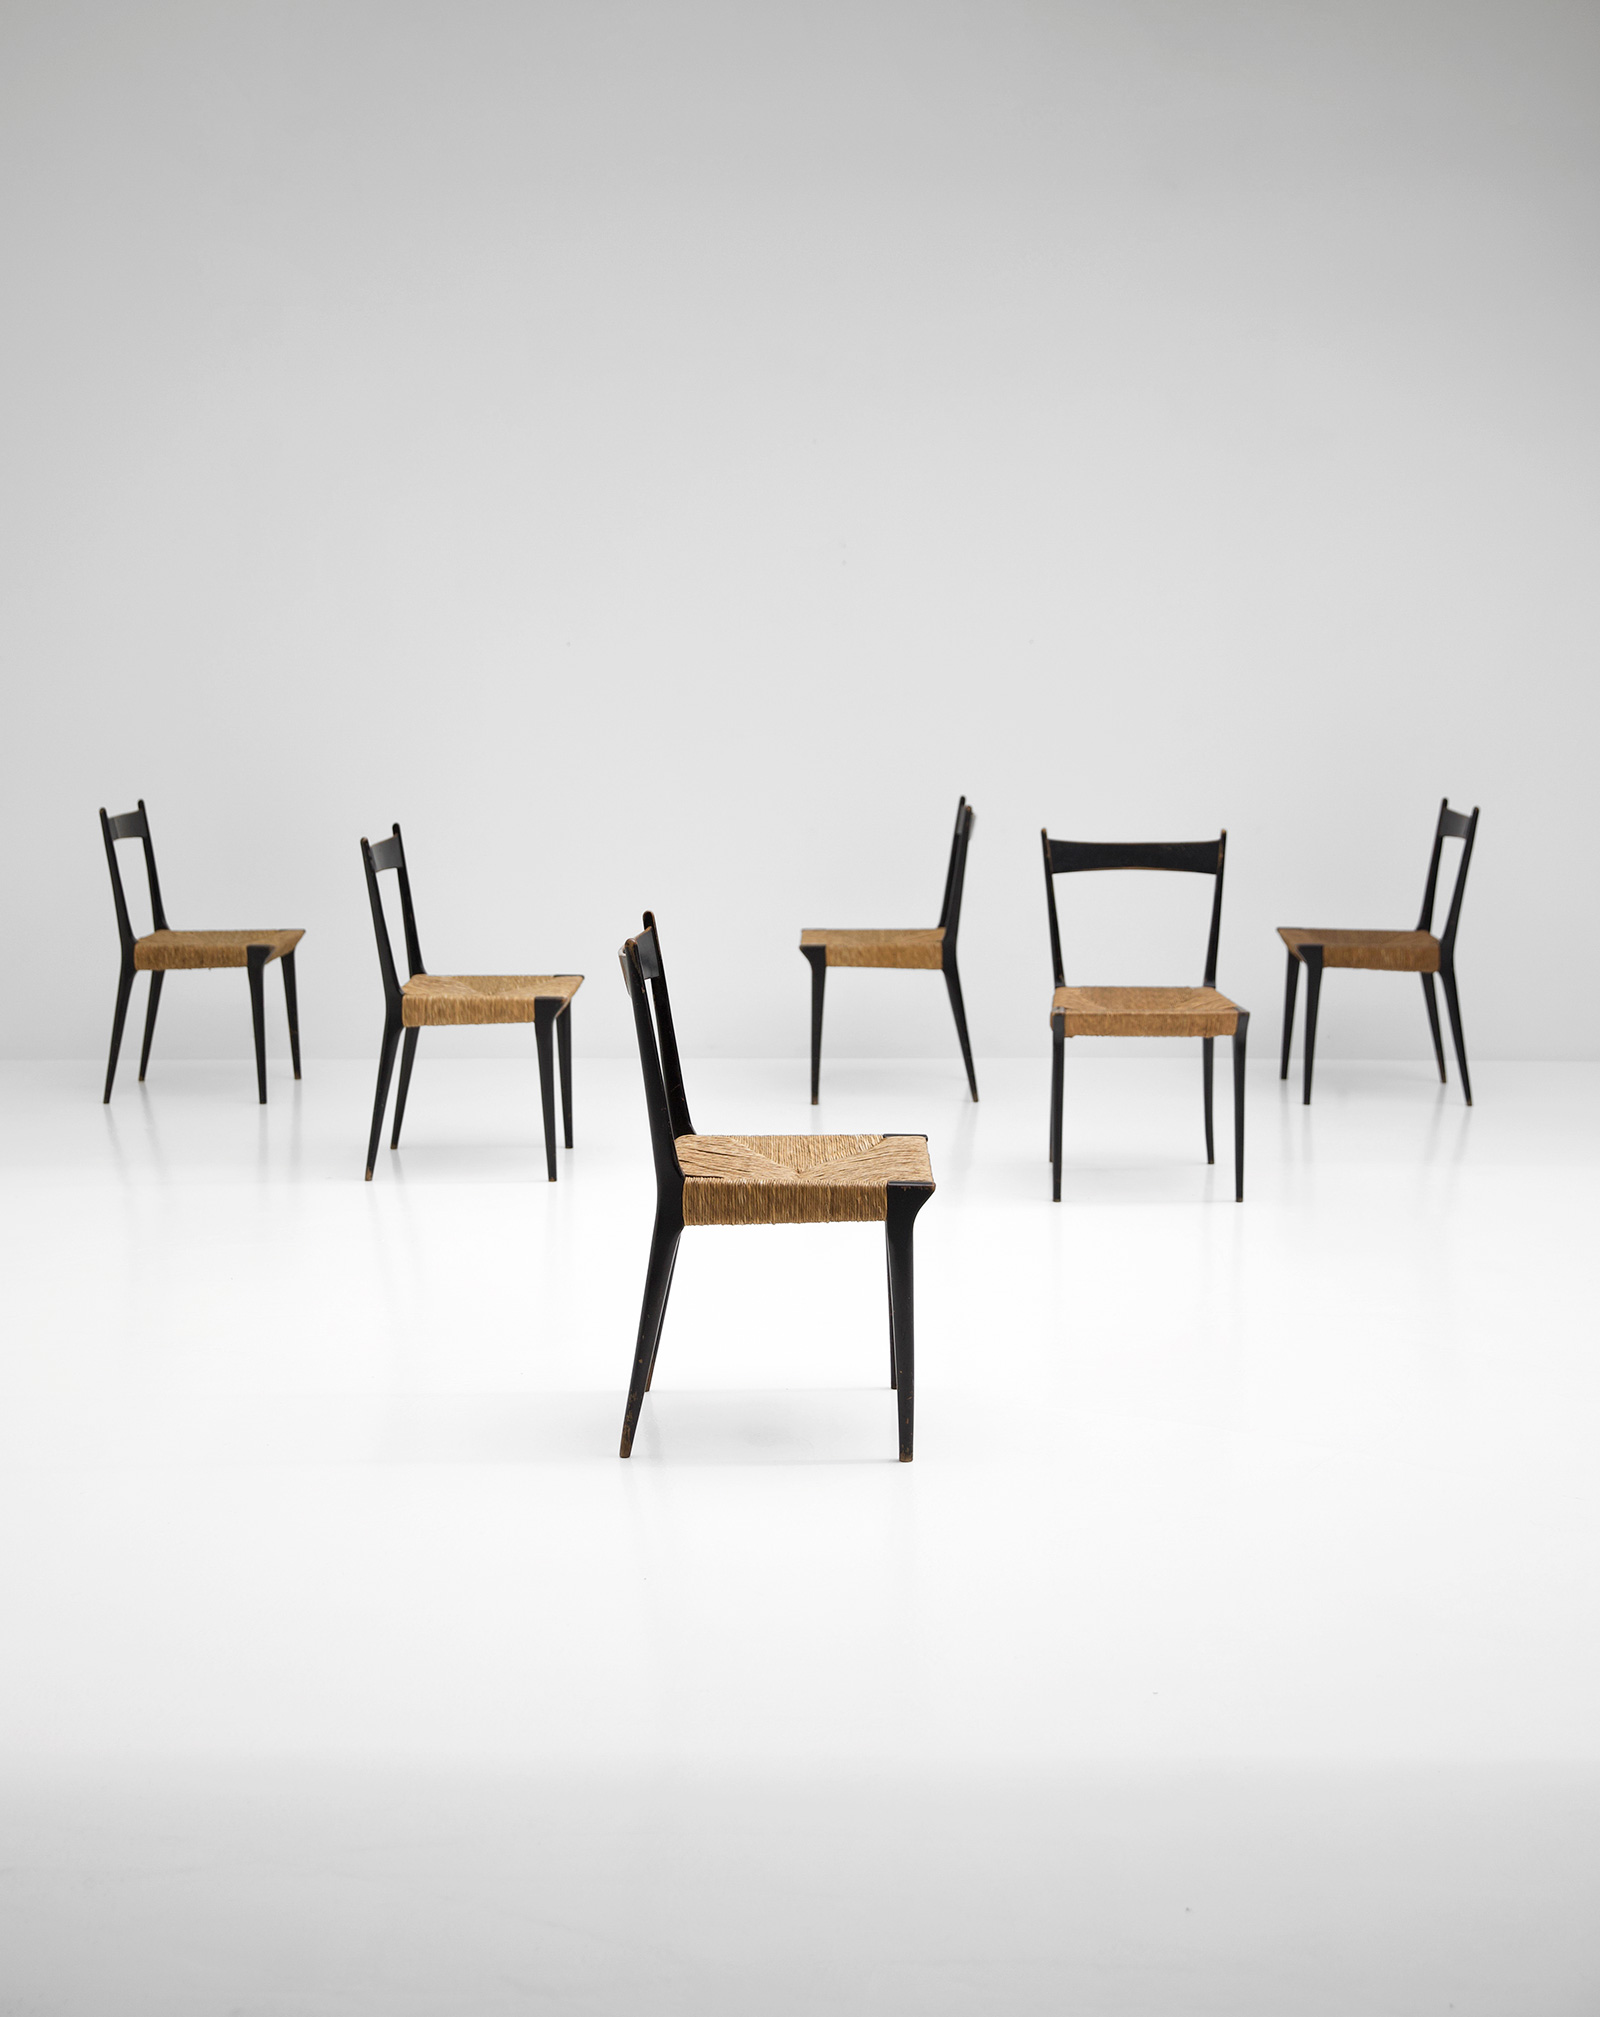 Alfred Hendrickx Woven Cane S2 Chairsimage 1